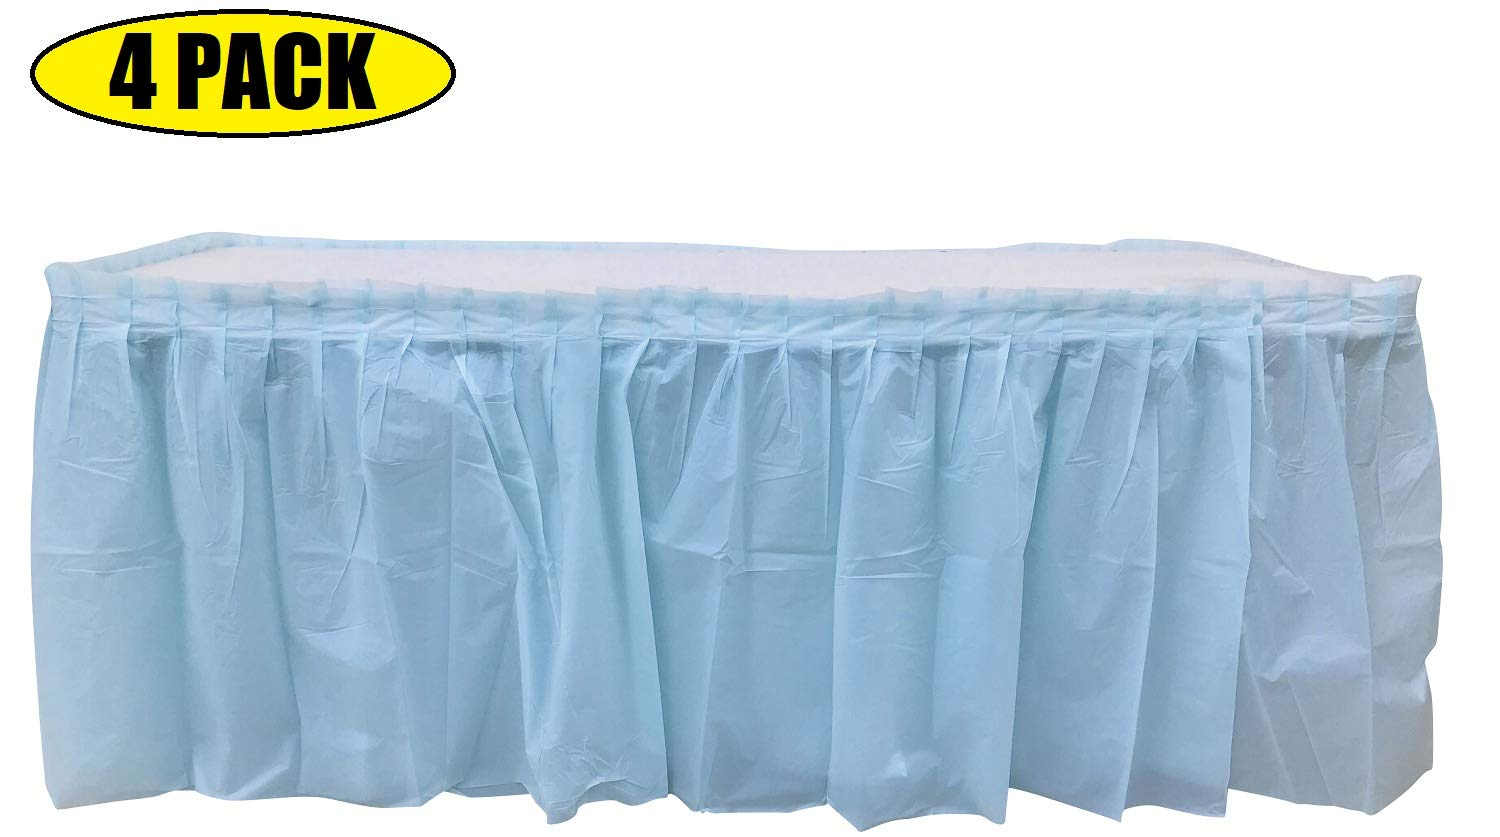 4 Pack Light Blue Table Skirt Carnival, Circus, Birthday, office, party Decorations, Baby Shower, Gender Reveal